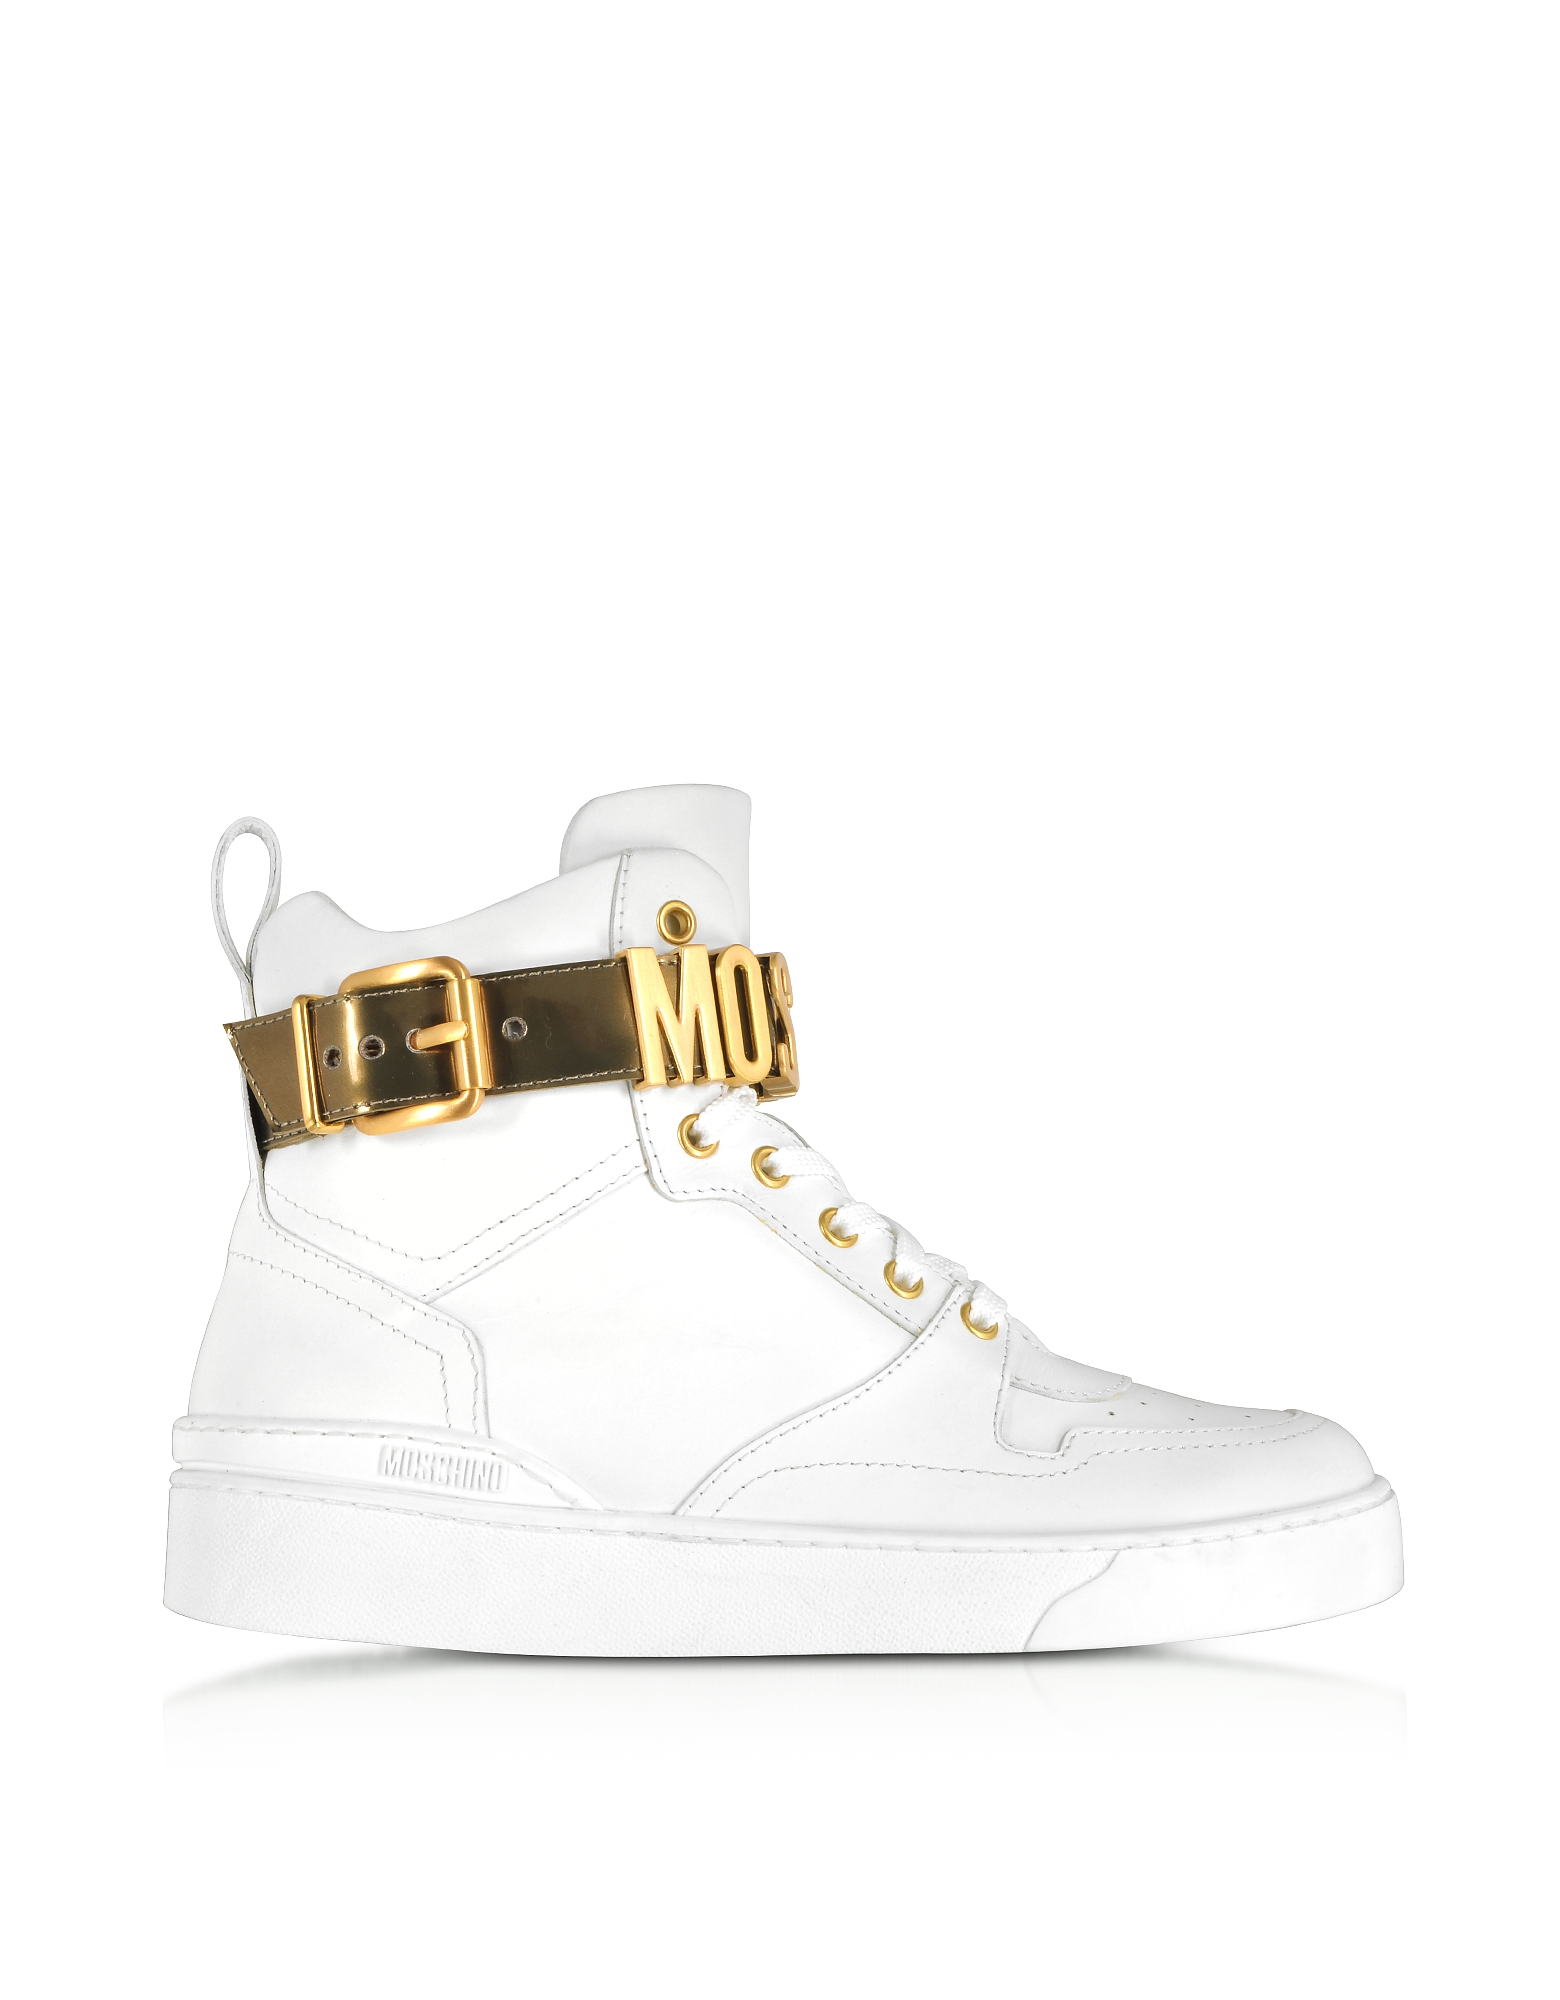 Moschino Shoes, Optic White Leather High Top Sneakers w/Gold Tone Signature Logo